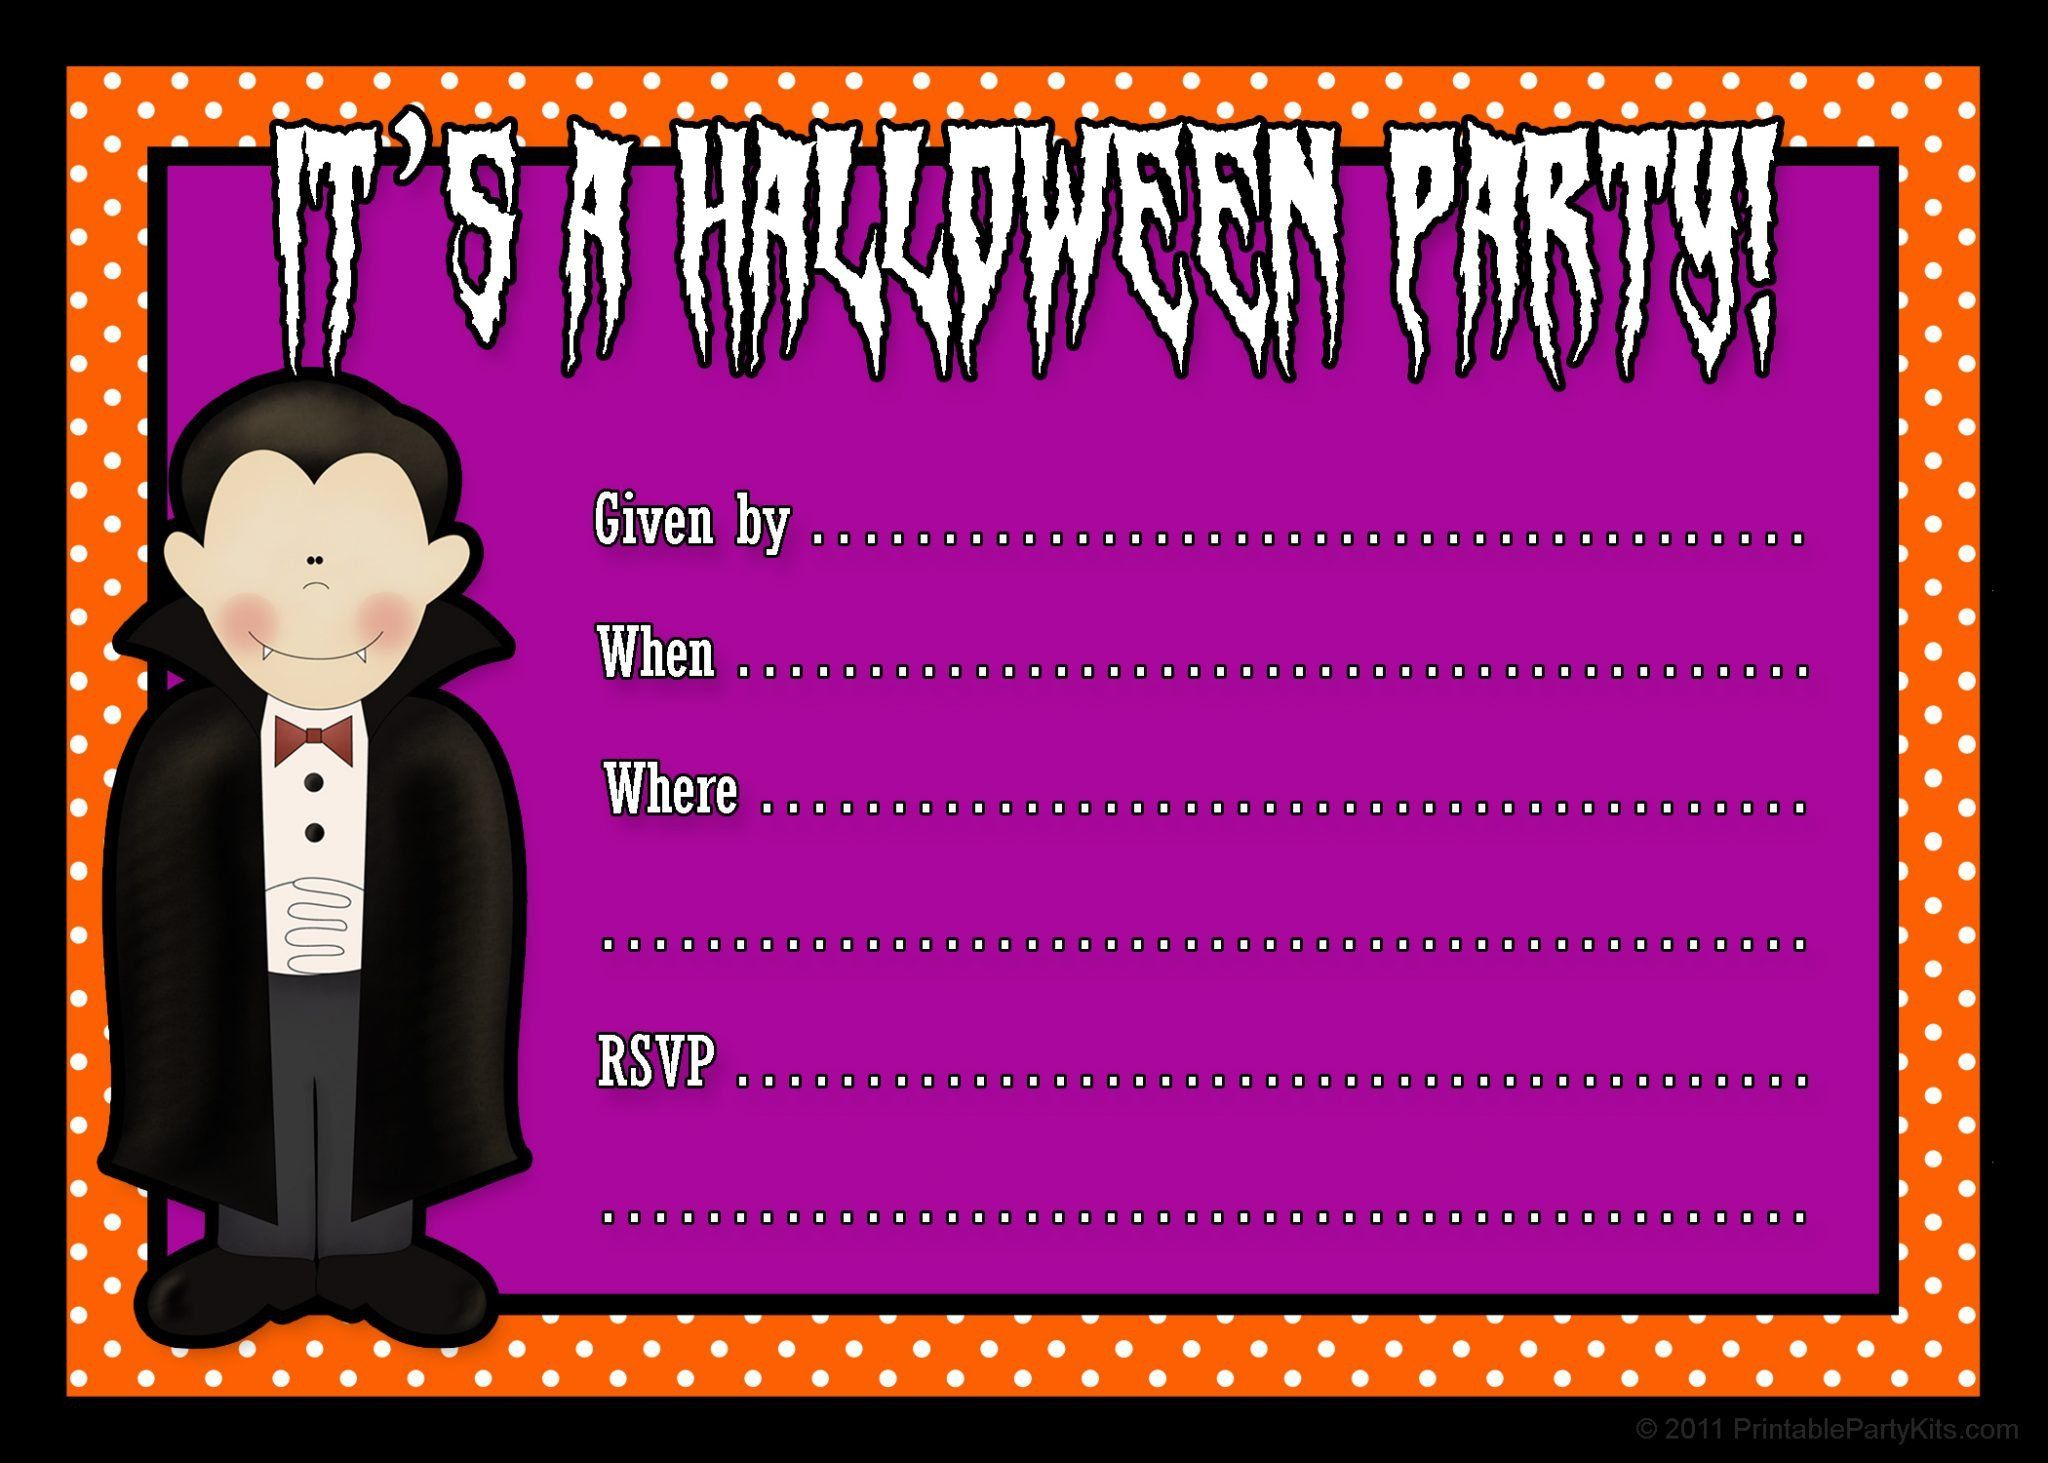 001 Fascinating Free Halloween Party Invitation Template Highest Quality  Printable Birthday For Word DownloadFull